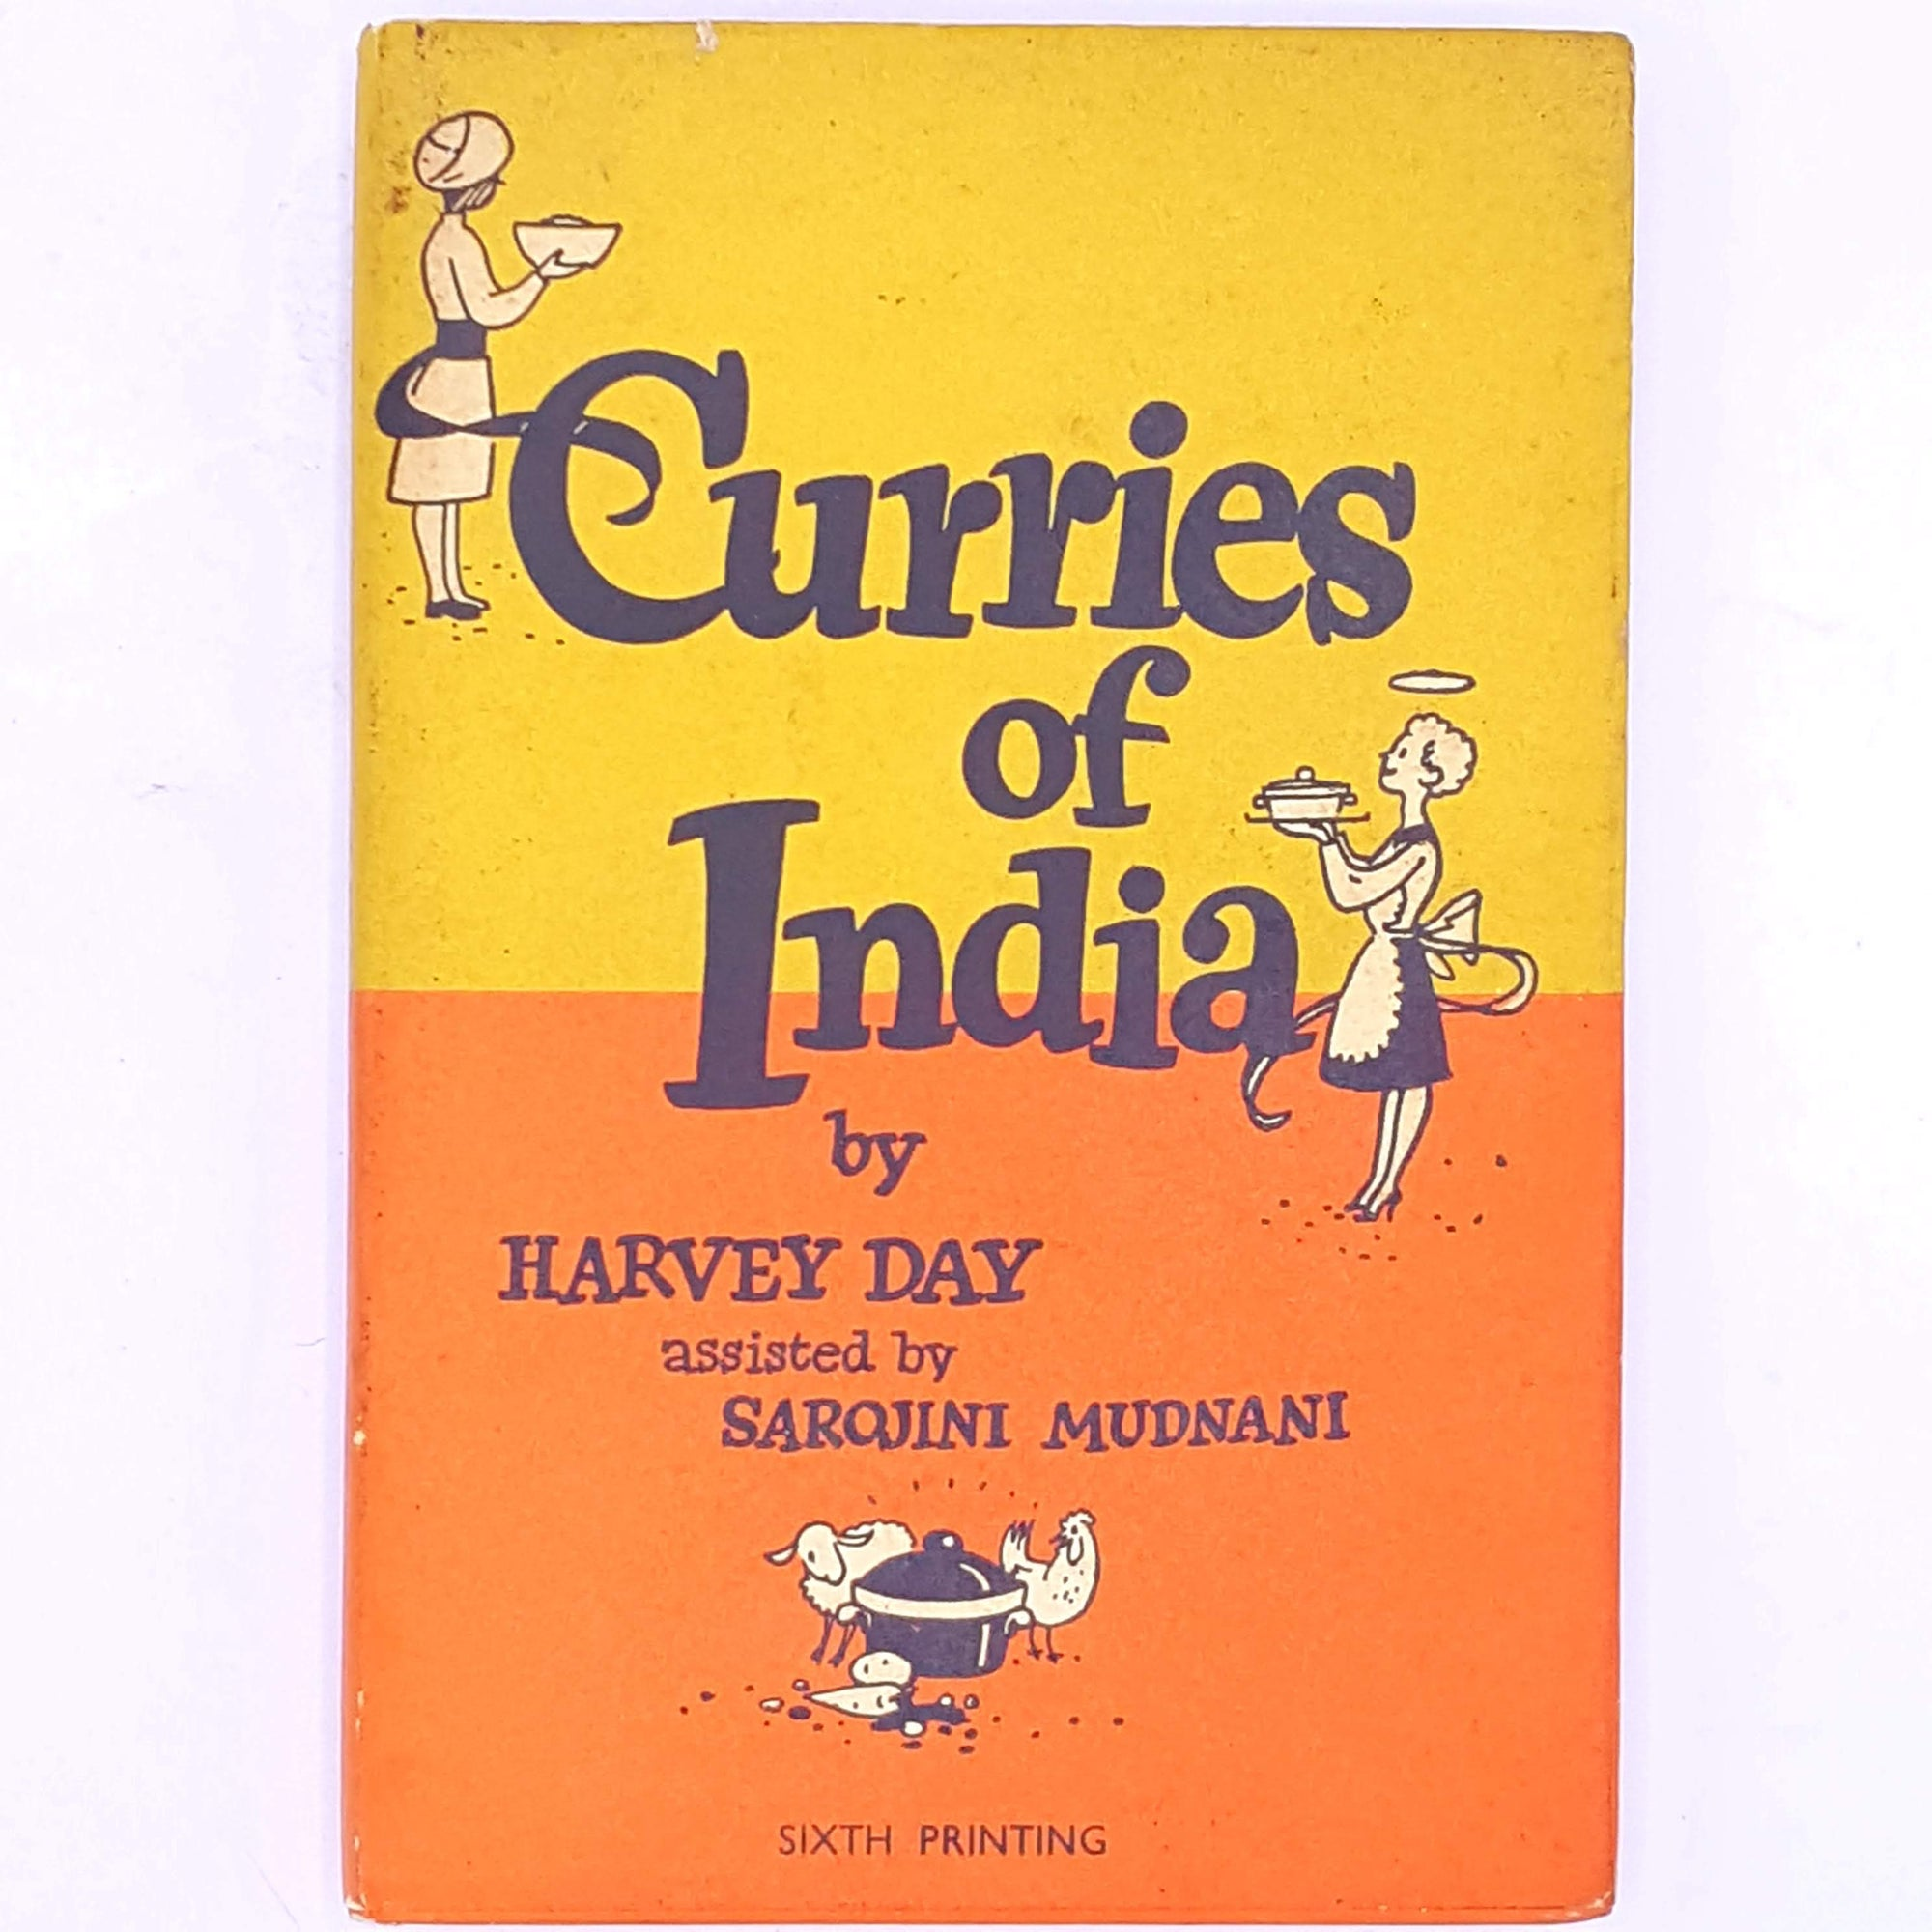 Curries of India by Harvey Day assisted by Sarojini Mudnani